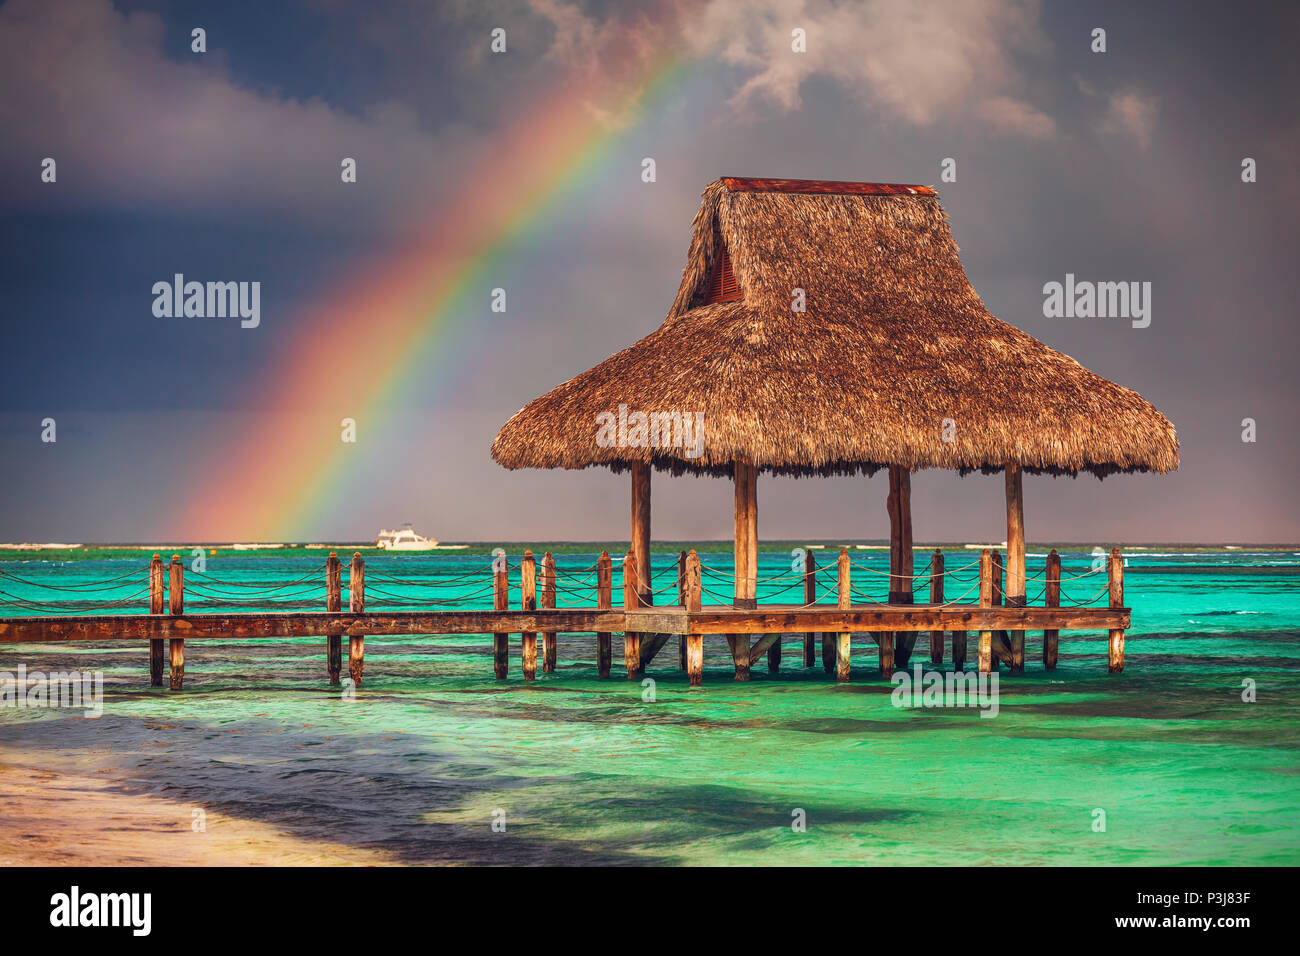 Rainbow over the  Wooden Water Villa  in Cap Cana, Dominican Republic. - Stock Image